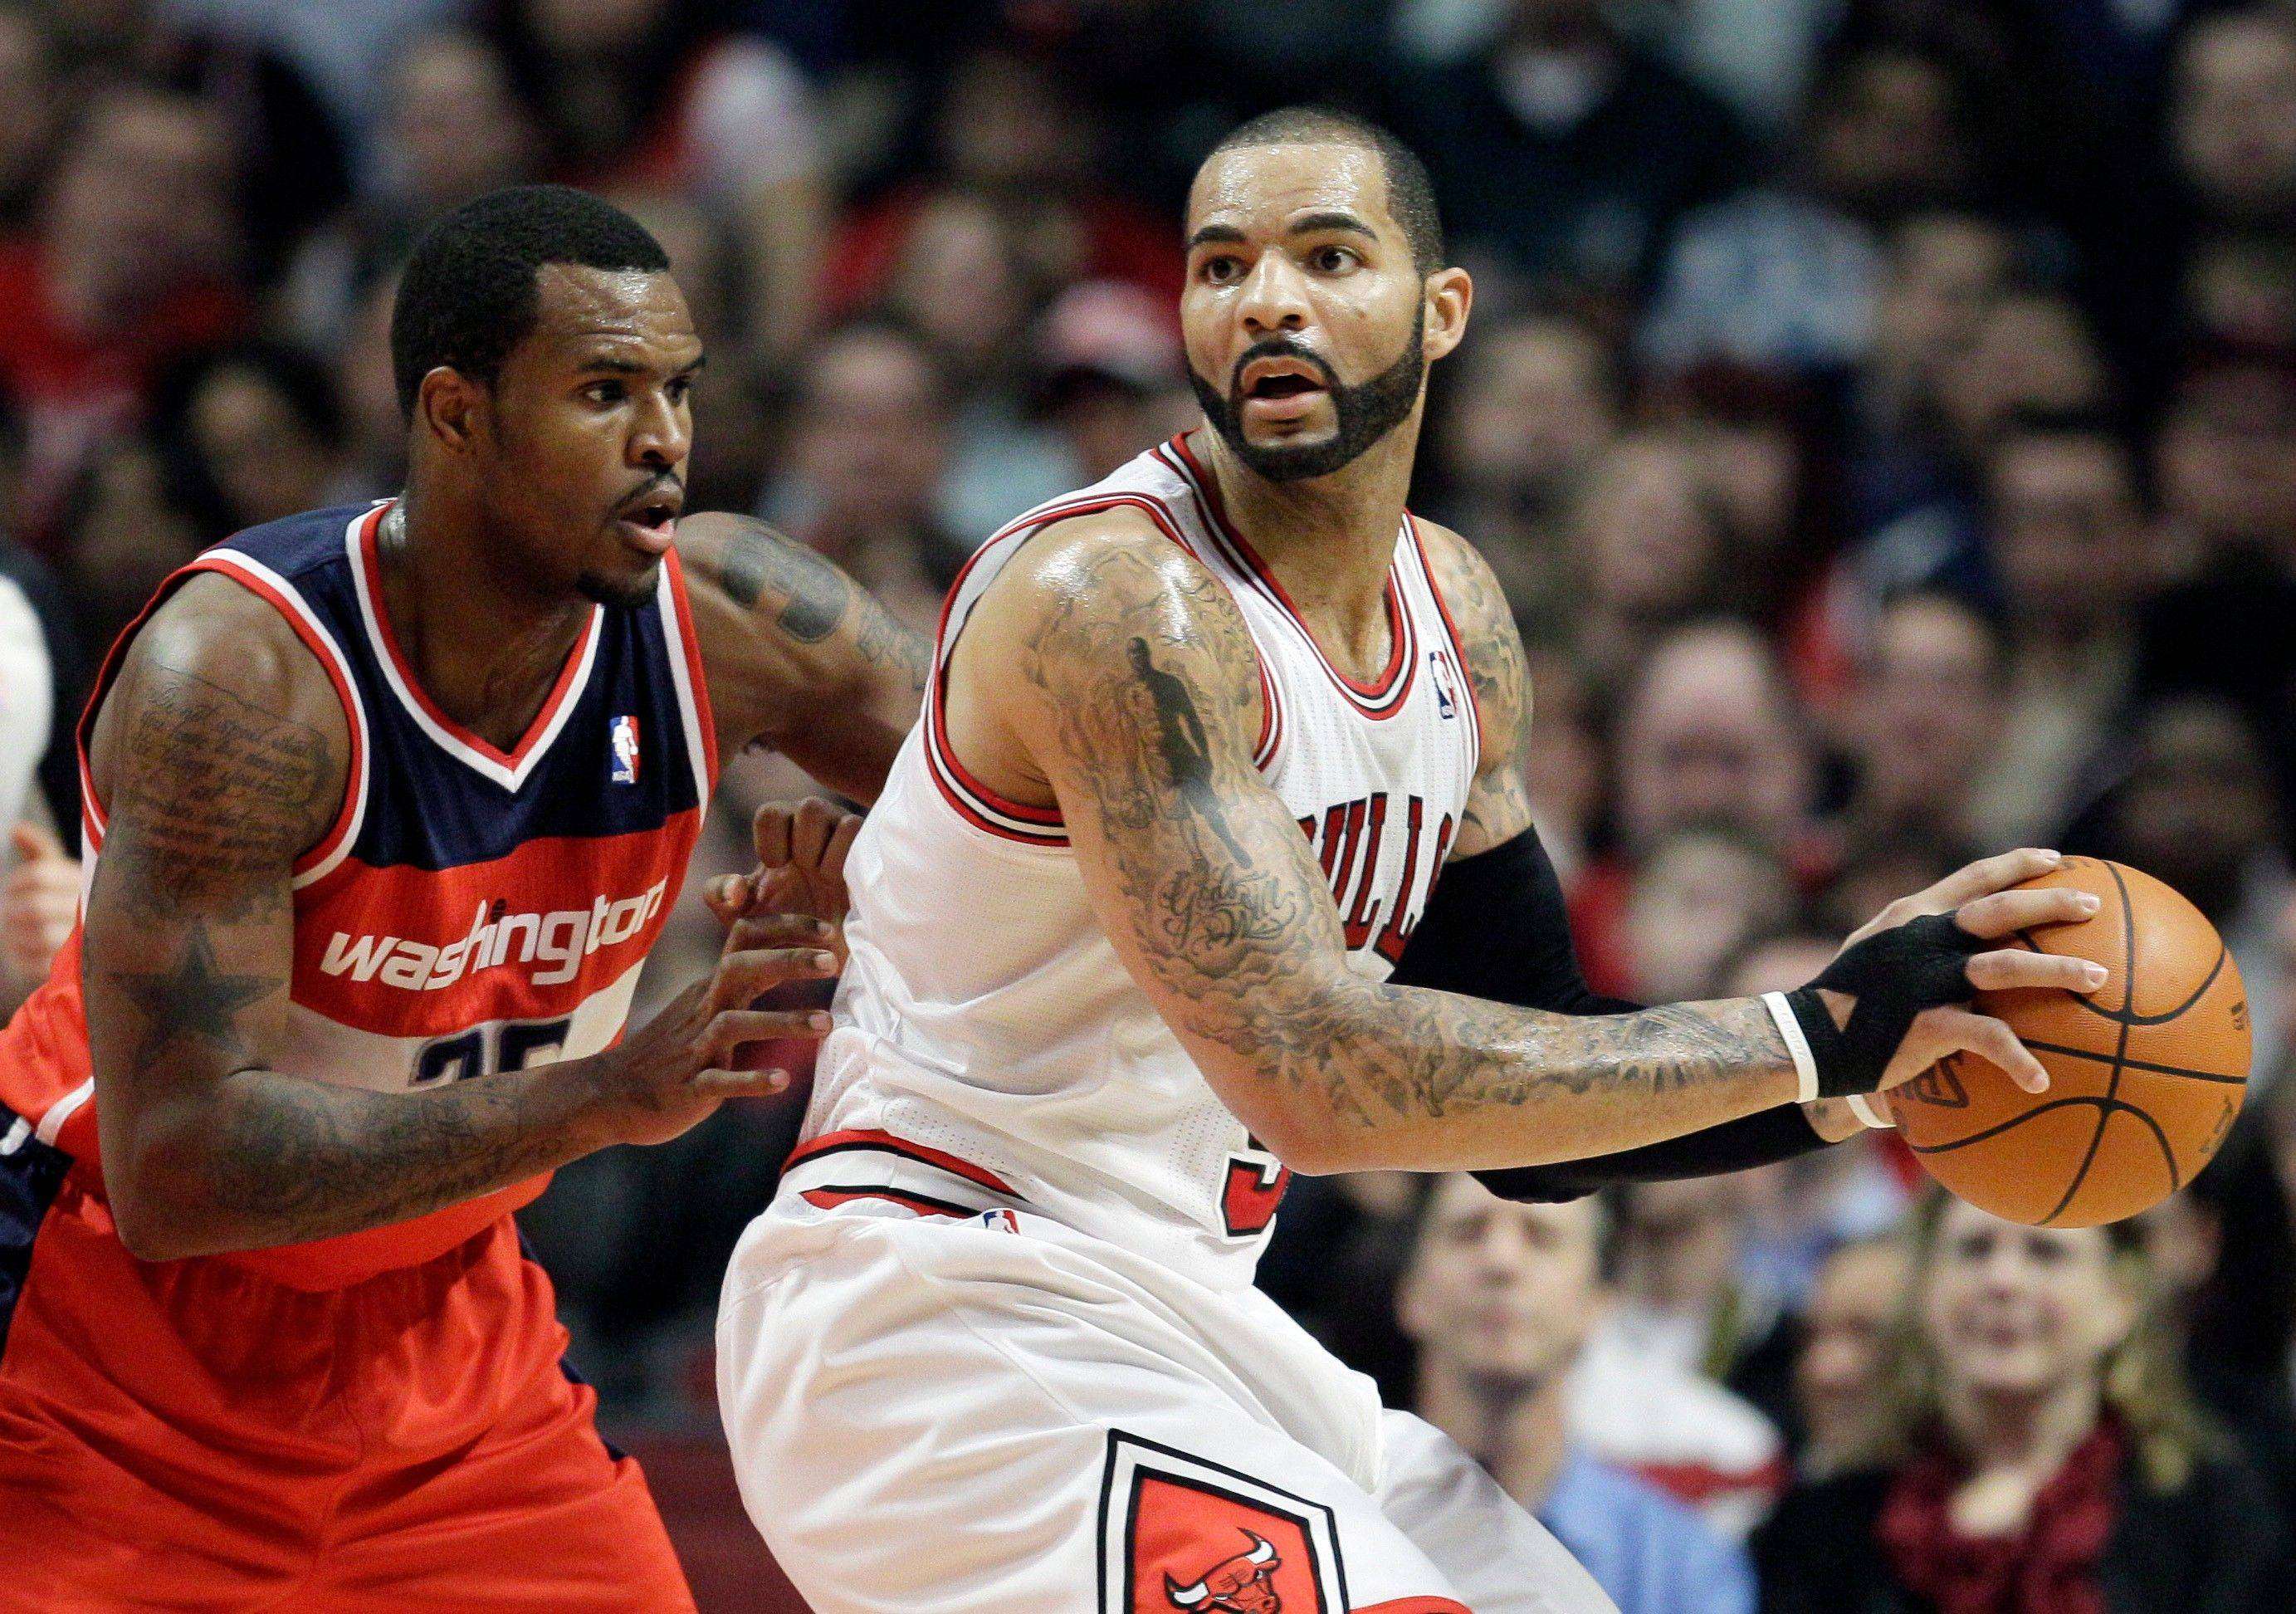 Carlos Boozer didn't play a second in the fourth quarter of the Bulls' win over Washington on Wednesday. This has been a hot topic around town, but coach Tom Thibodeau said he thought he could win the game with defense, which is why Taj Gibson and Omer Asik were on the floor.